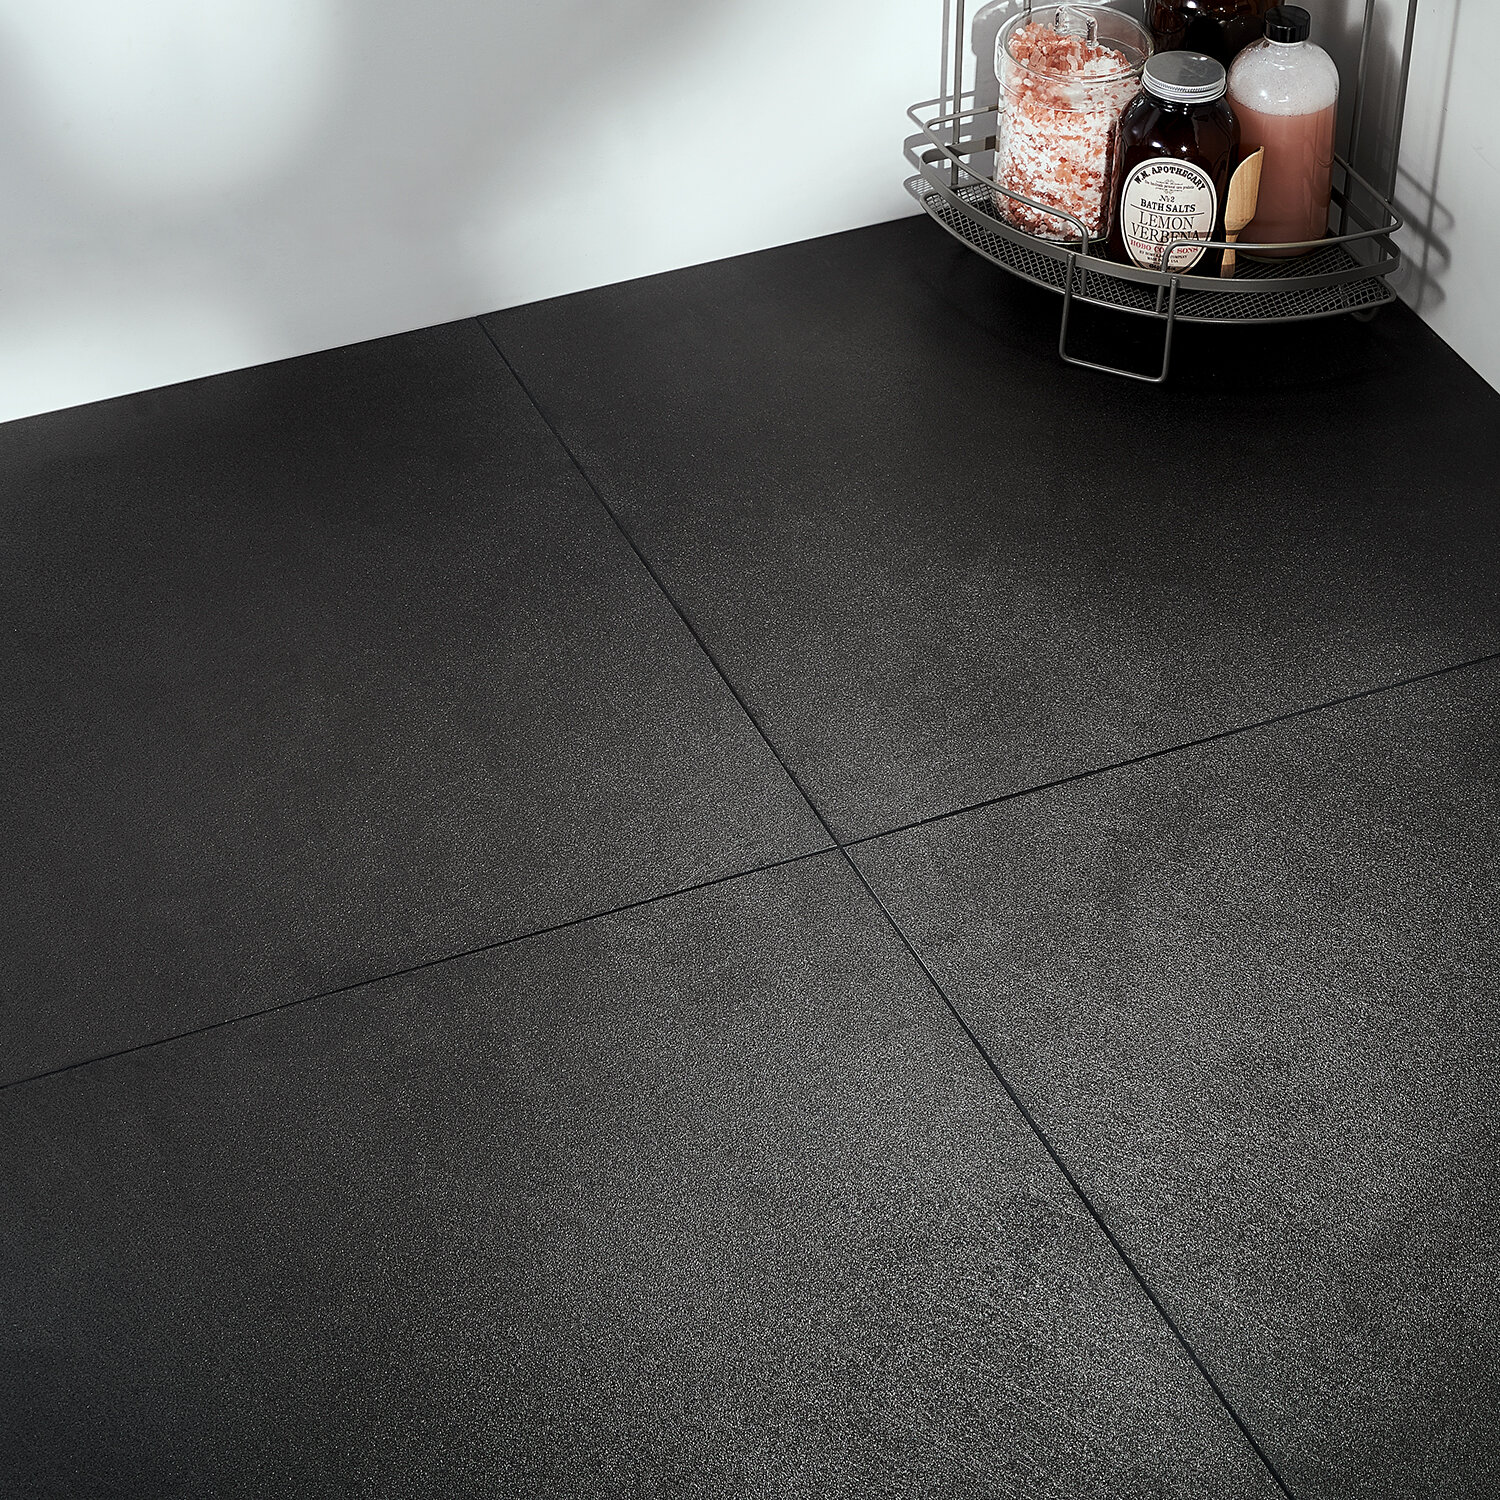 Ivy Hill Tile Echo Textured 24 X